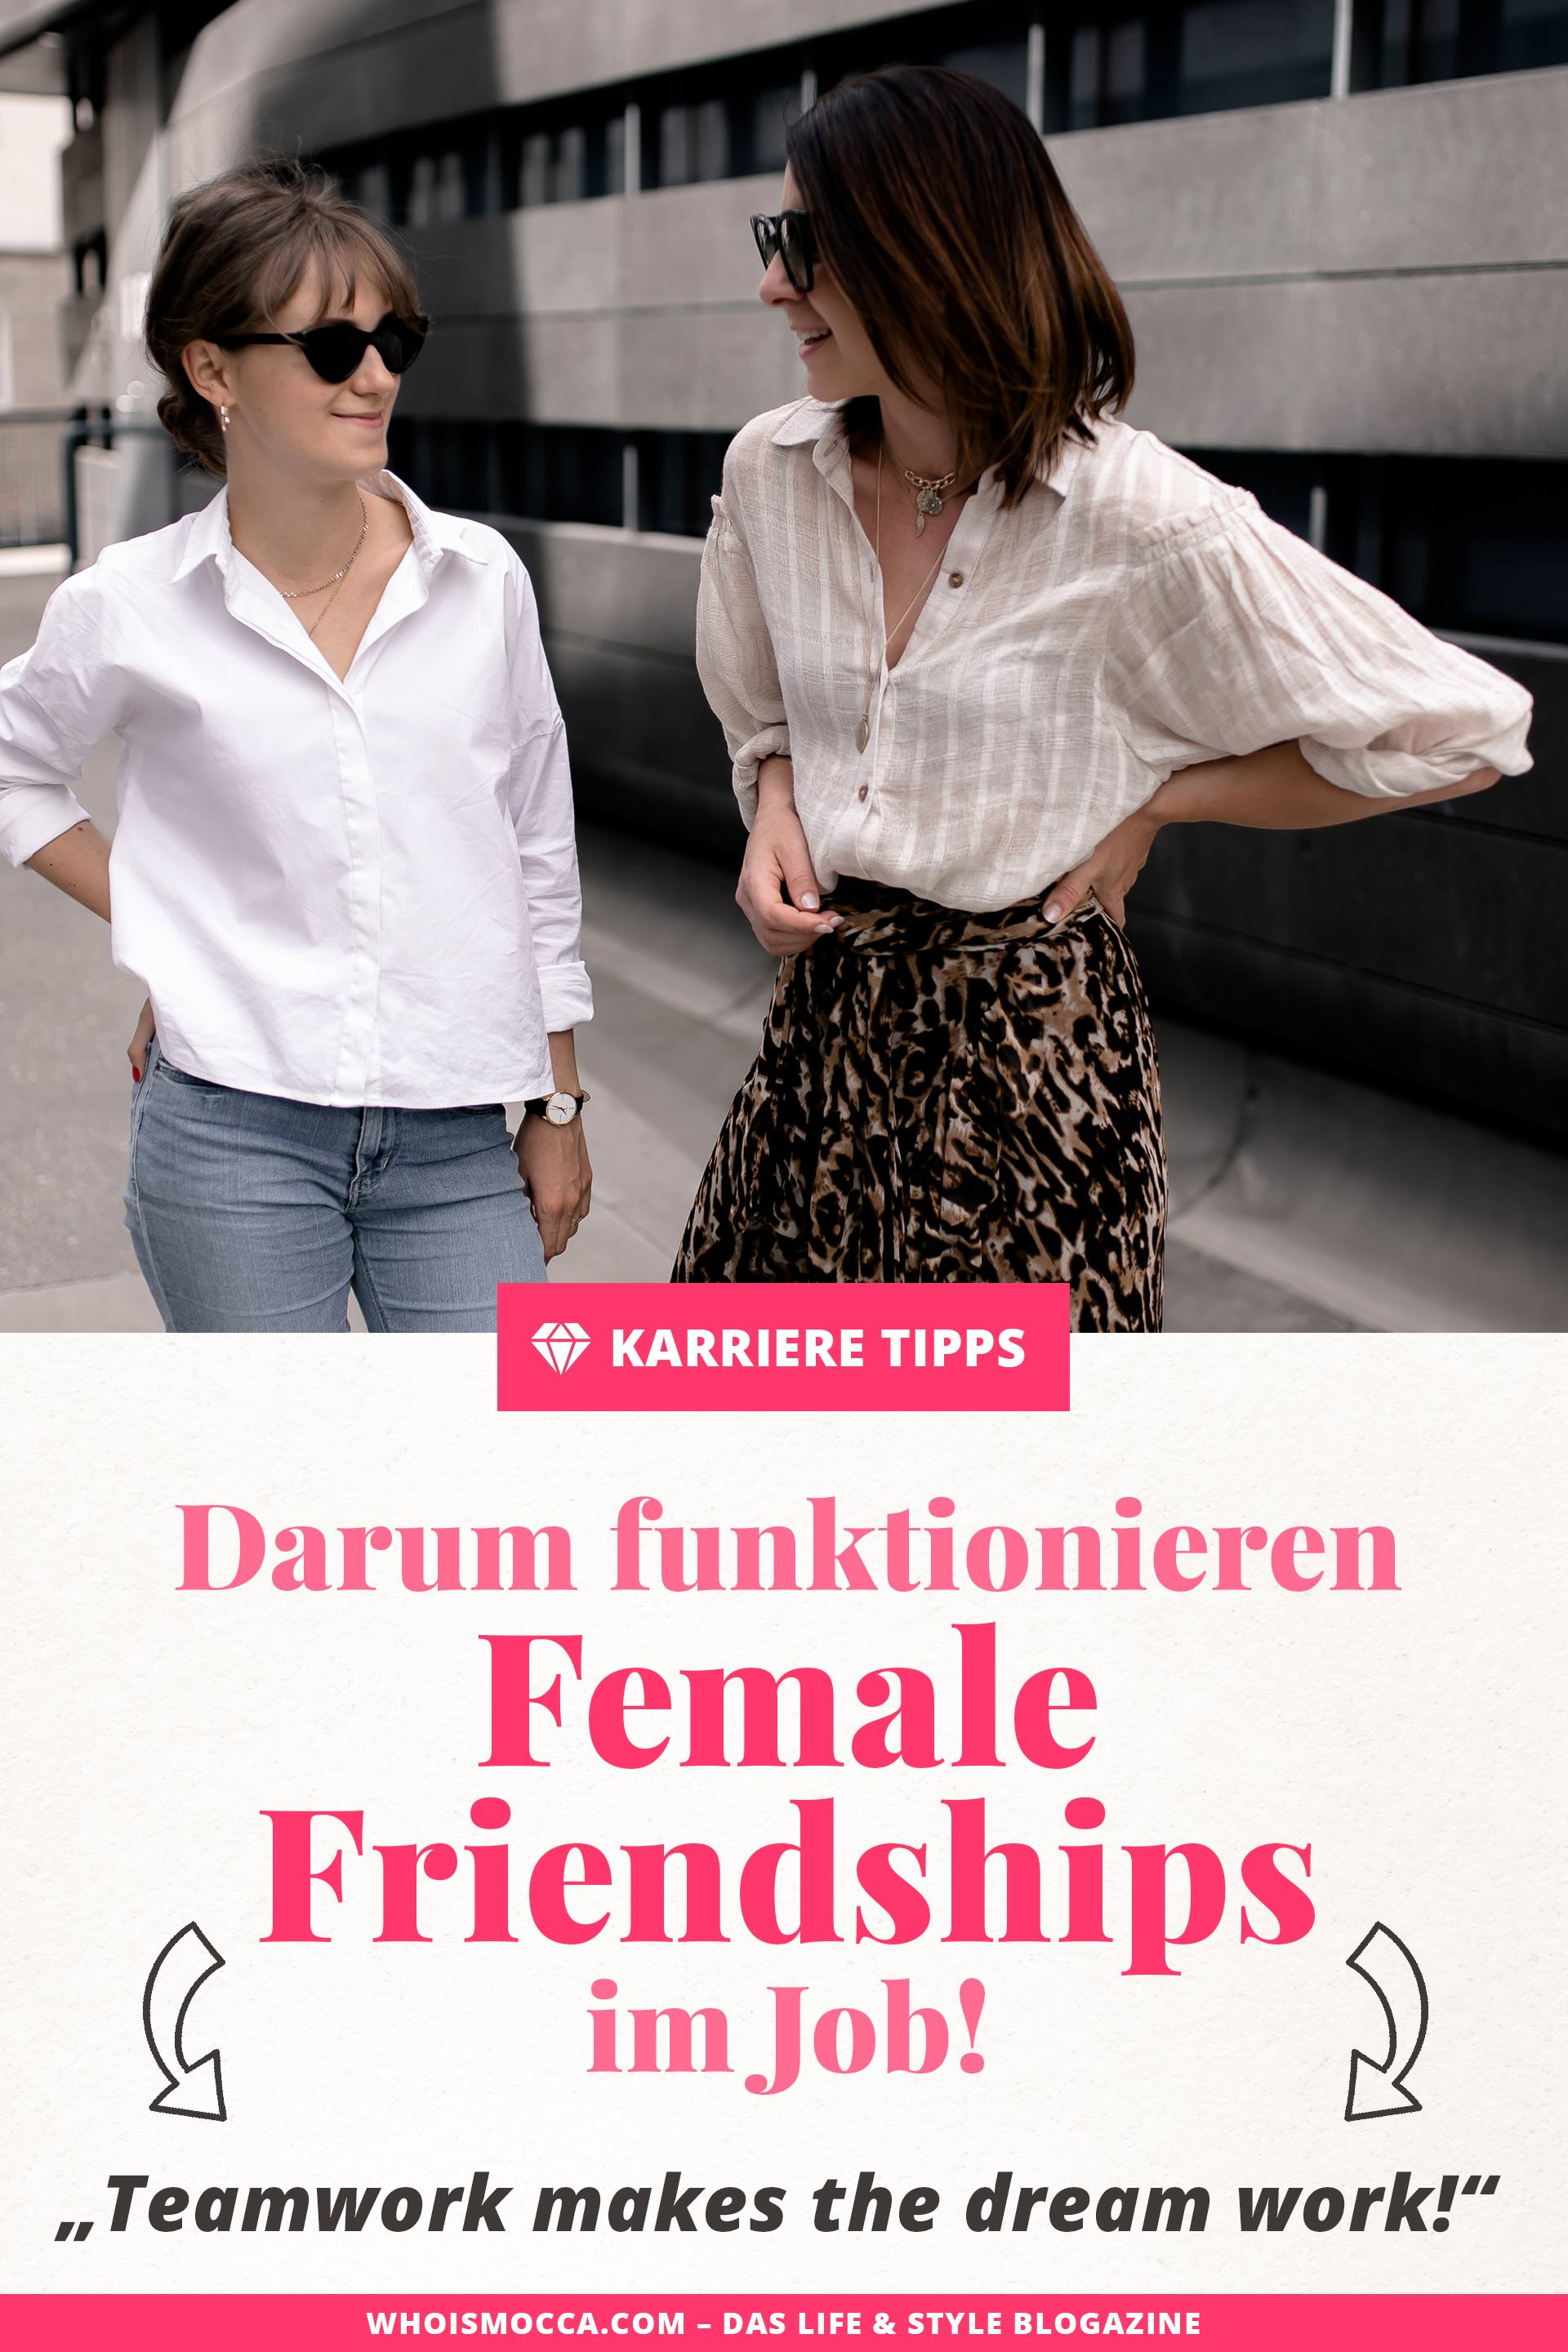 Teamwork makes the dream work, Darum funktionieren Frauenfreundschaften im Job, Female Friendships, Business Netzwerk für Frauen, Karriere Tipps für Frauen, Karriere Ratgeber, Frauen im Job, Karriere Blog, www.whoismocca.com #business #karriere #office #friendships #selbstständig